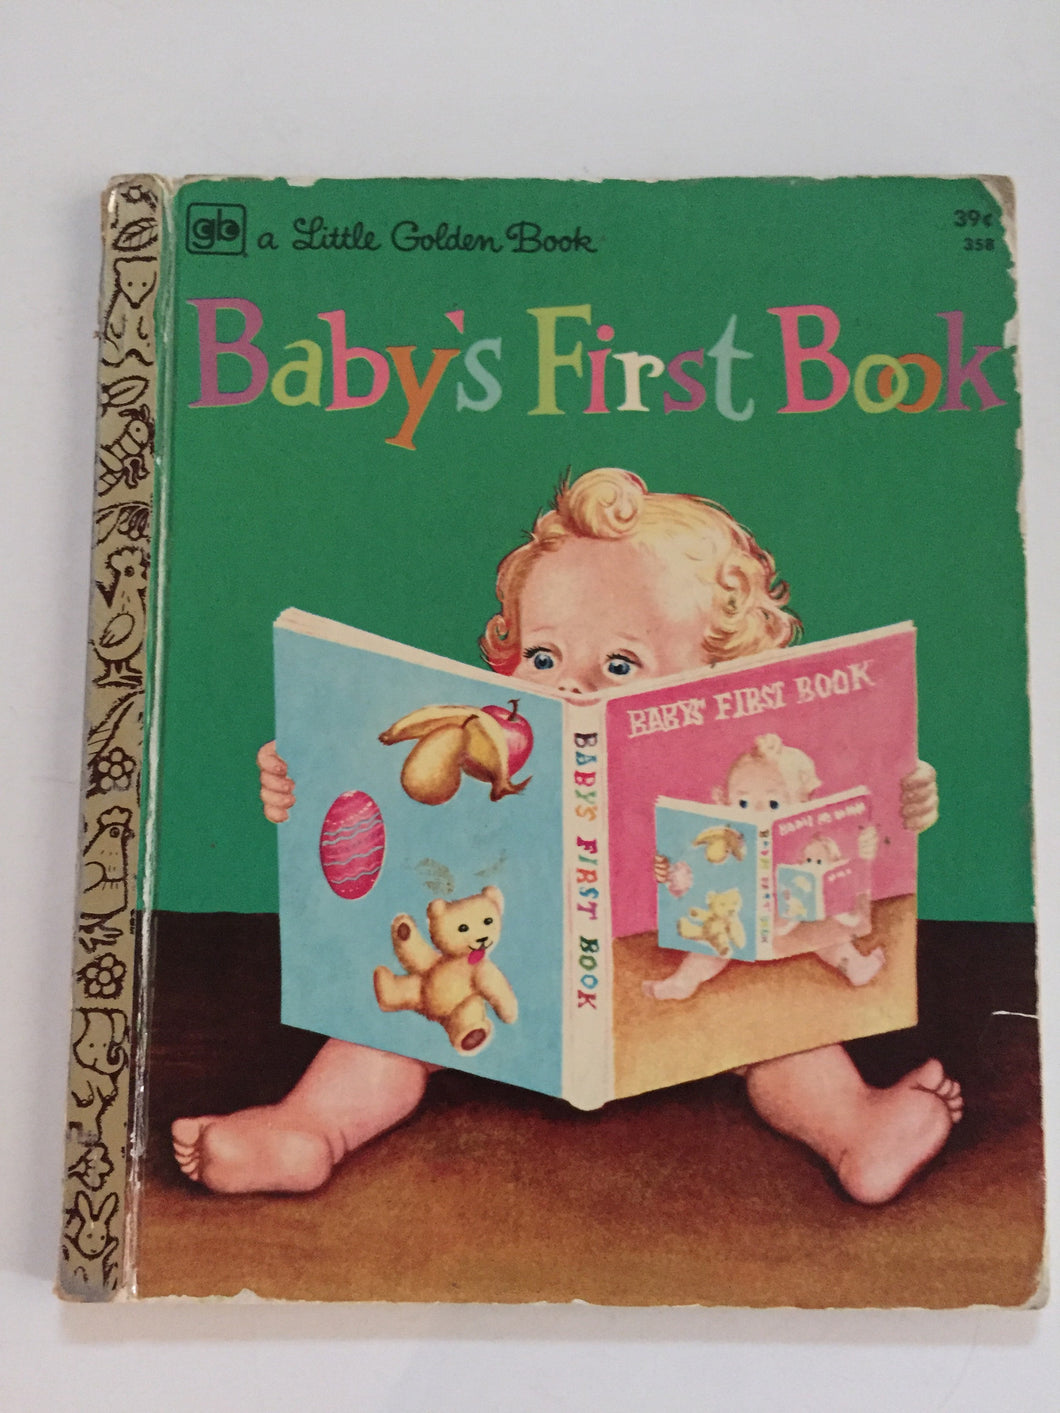 Baby's First Book - Slick Cat Book